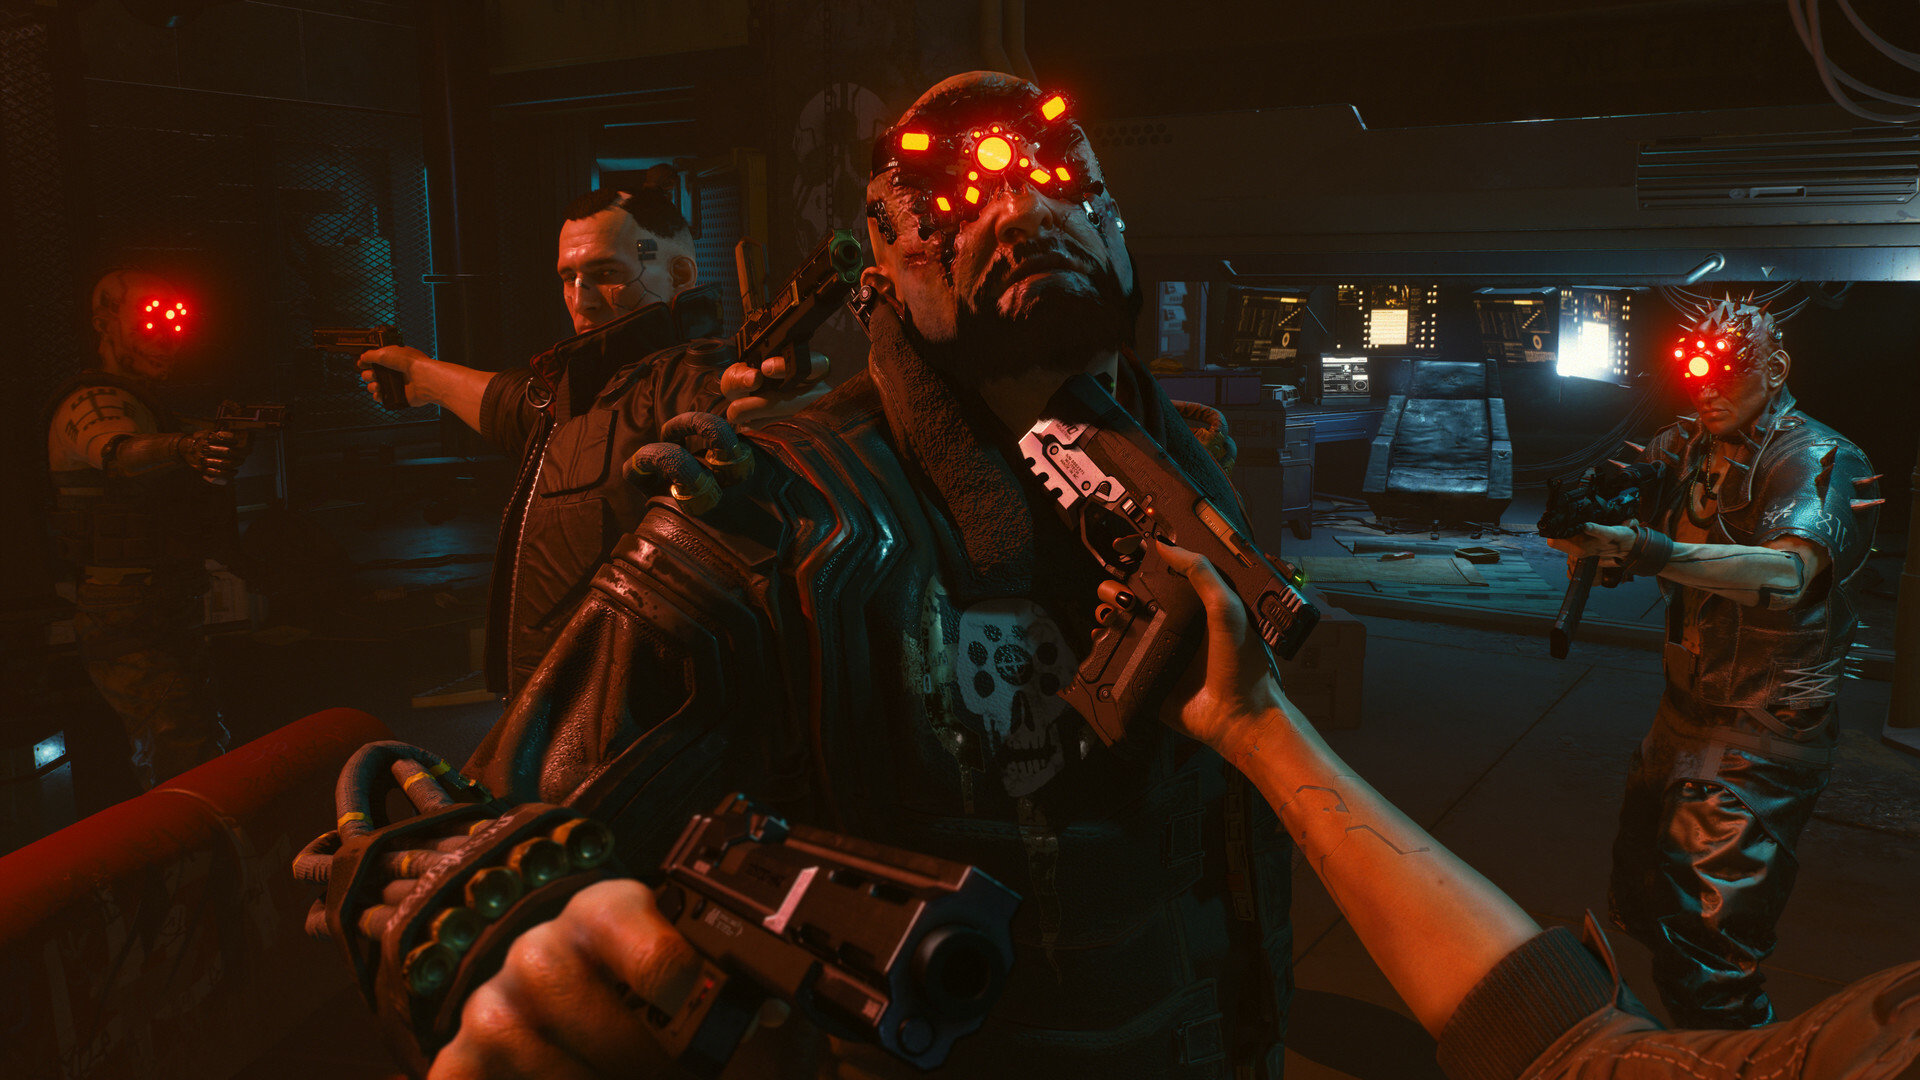 cyberpunk-2077-pc-screenshot-04